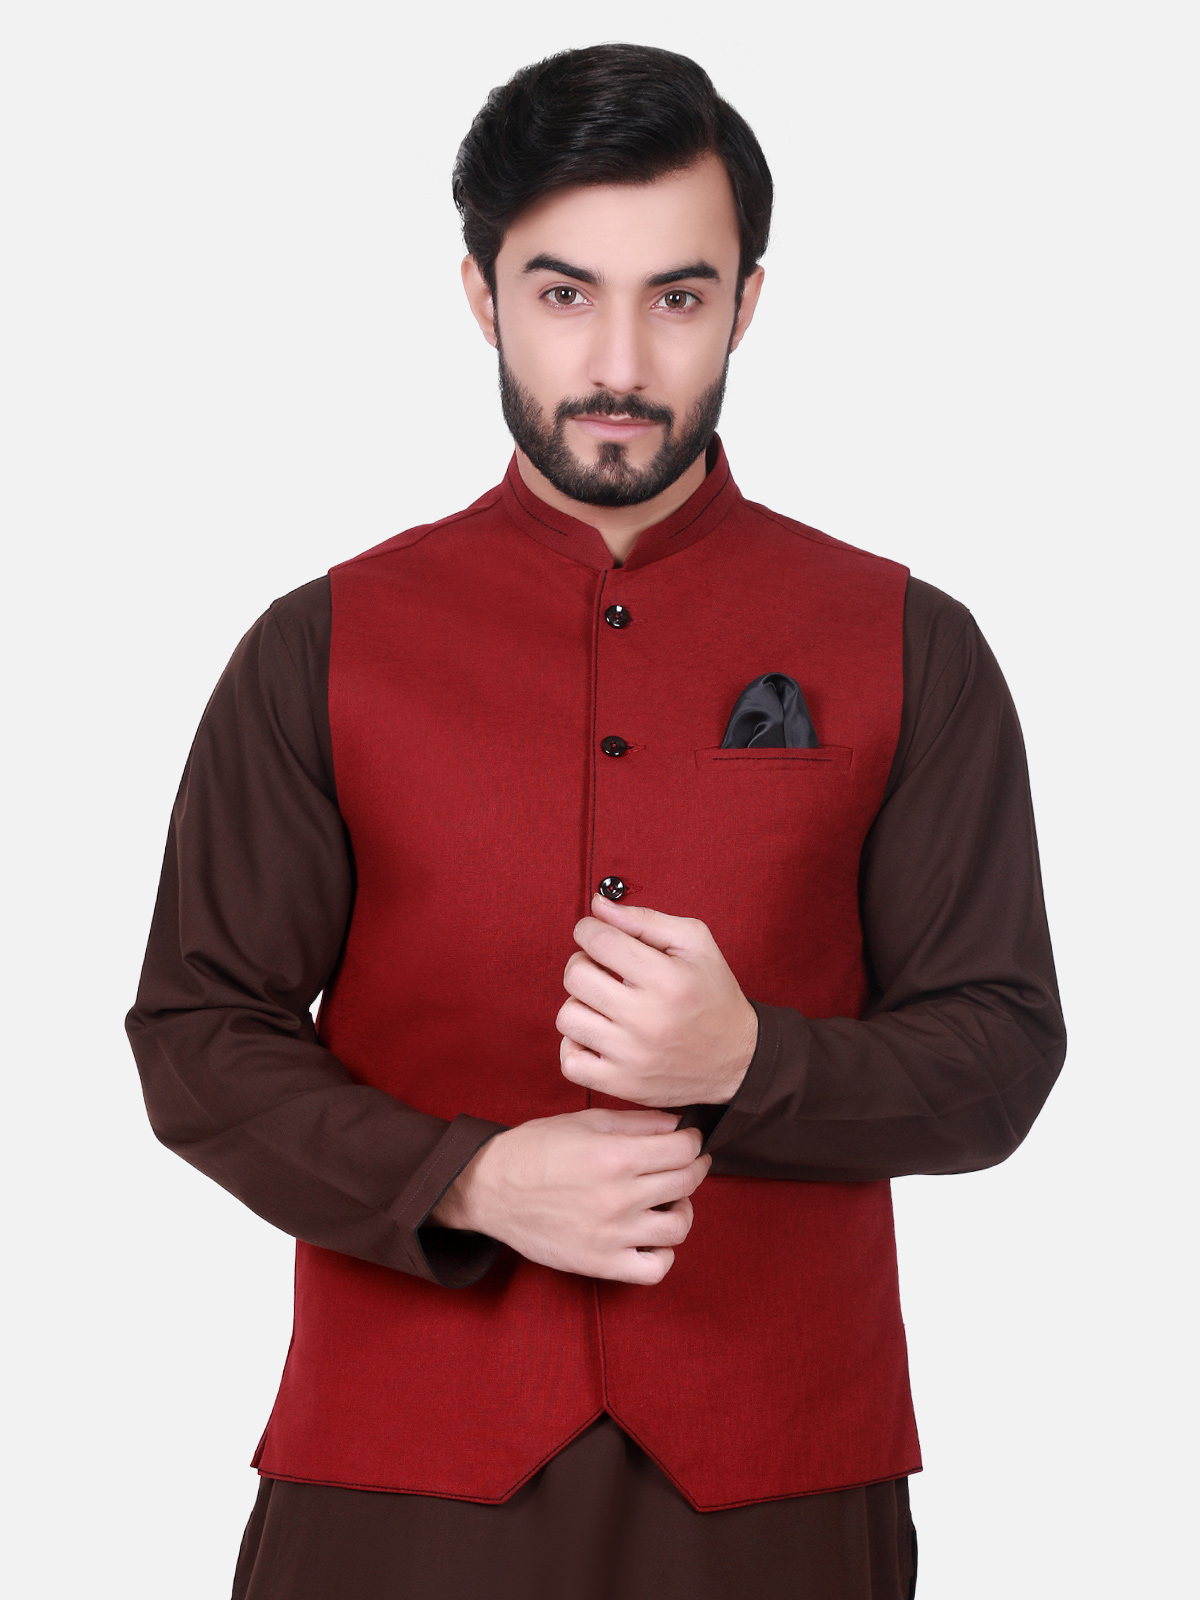 Trending Waist Coat Designs 2018 For Men Men 39 S Wasket Designs